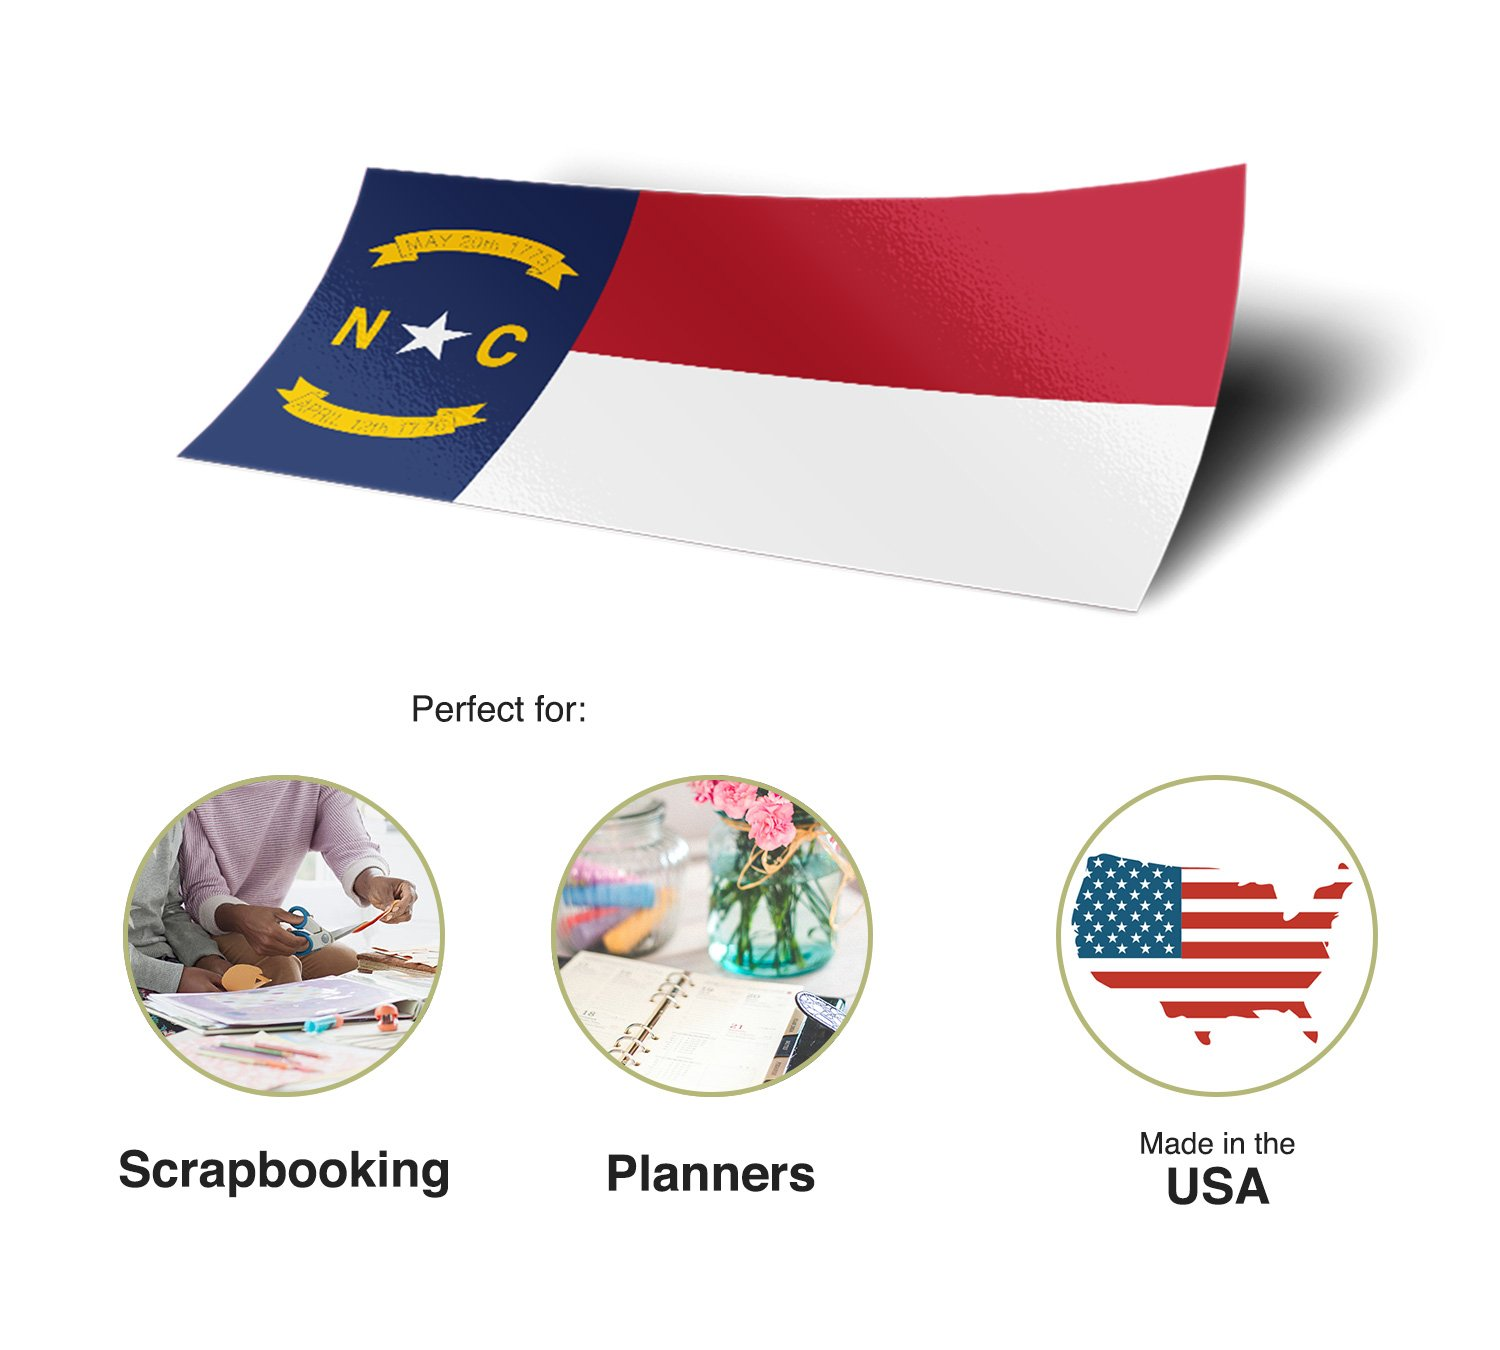 North Carolina NC State Flag Sticker Decal 1 Inch Rectangle Two Sheets 50 Total Pieces Kids Logo Scrapbook Car Vinyl Window Bumper Laptop R